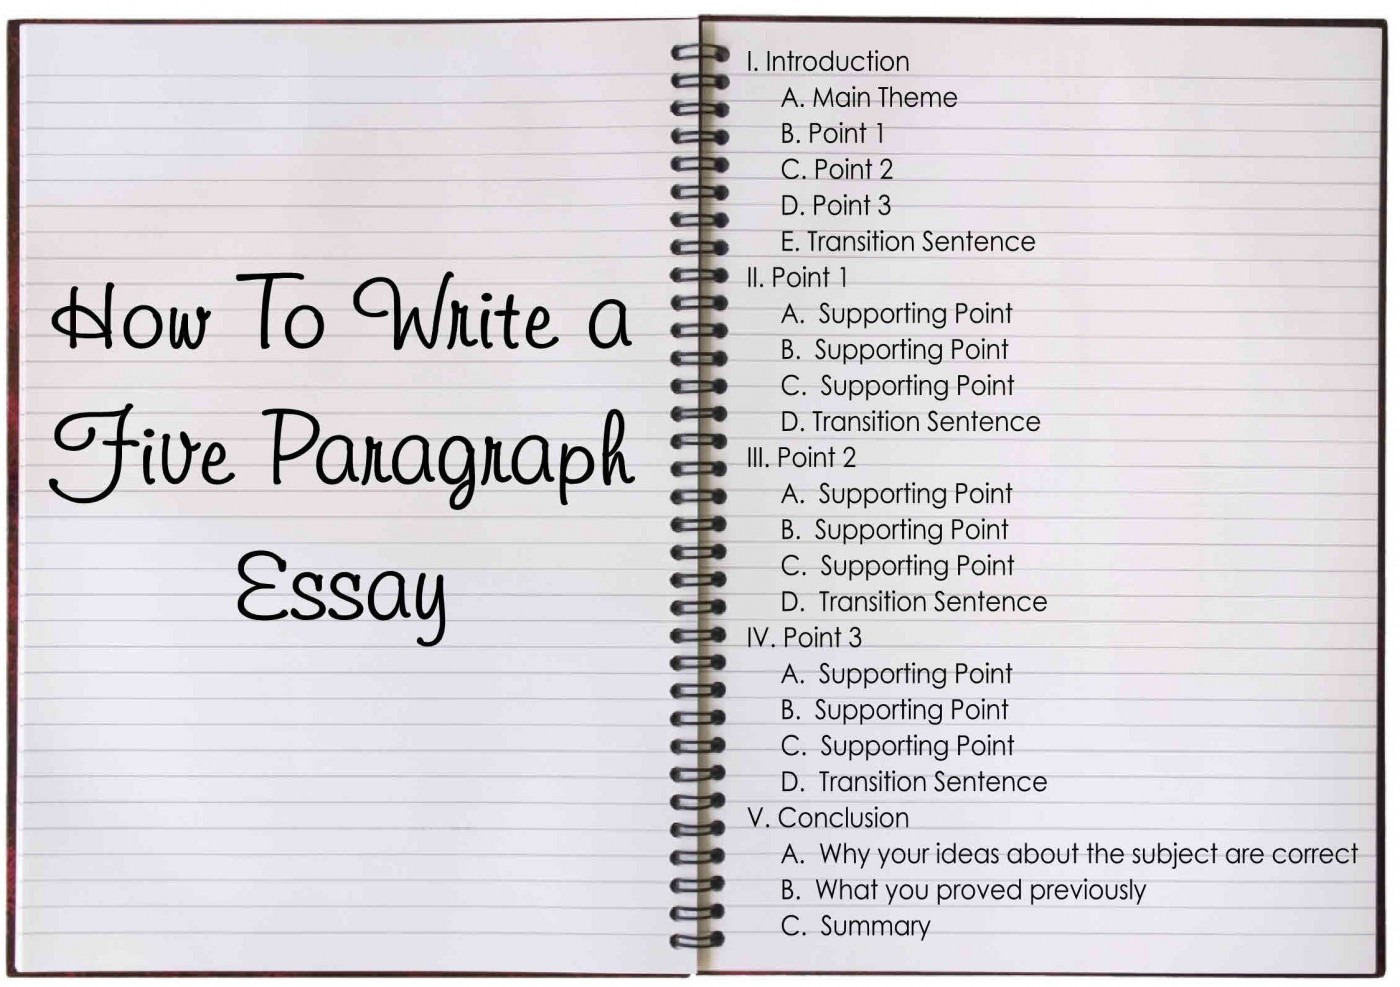 022 Issues To Write An Essay About Awesome Interesting Topics On For High School Social 1400